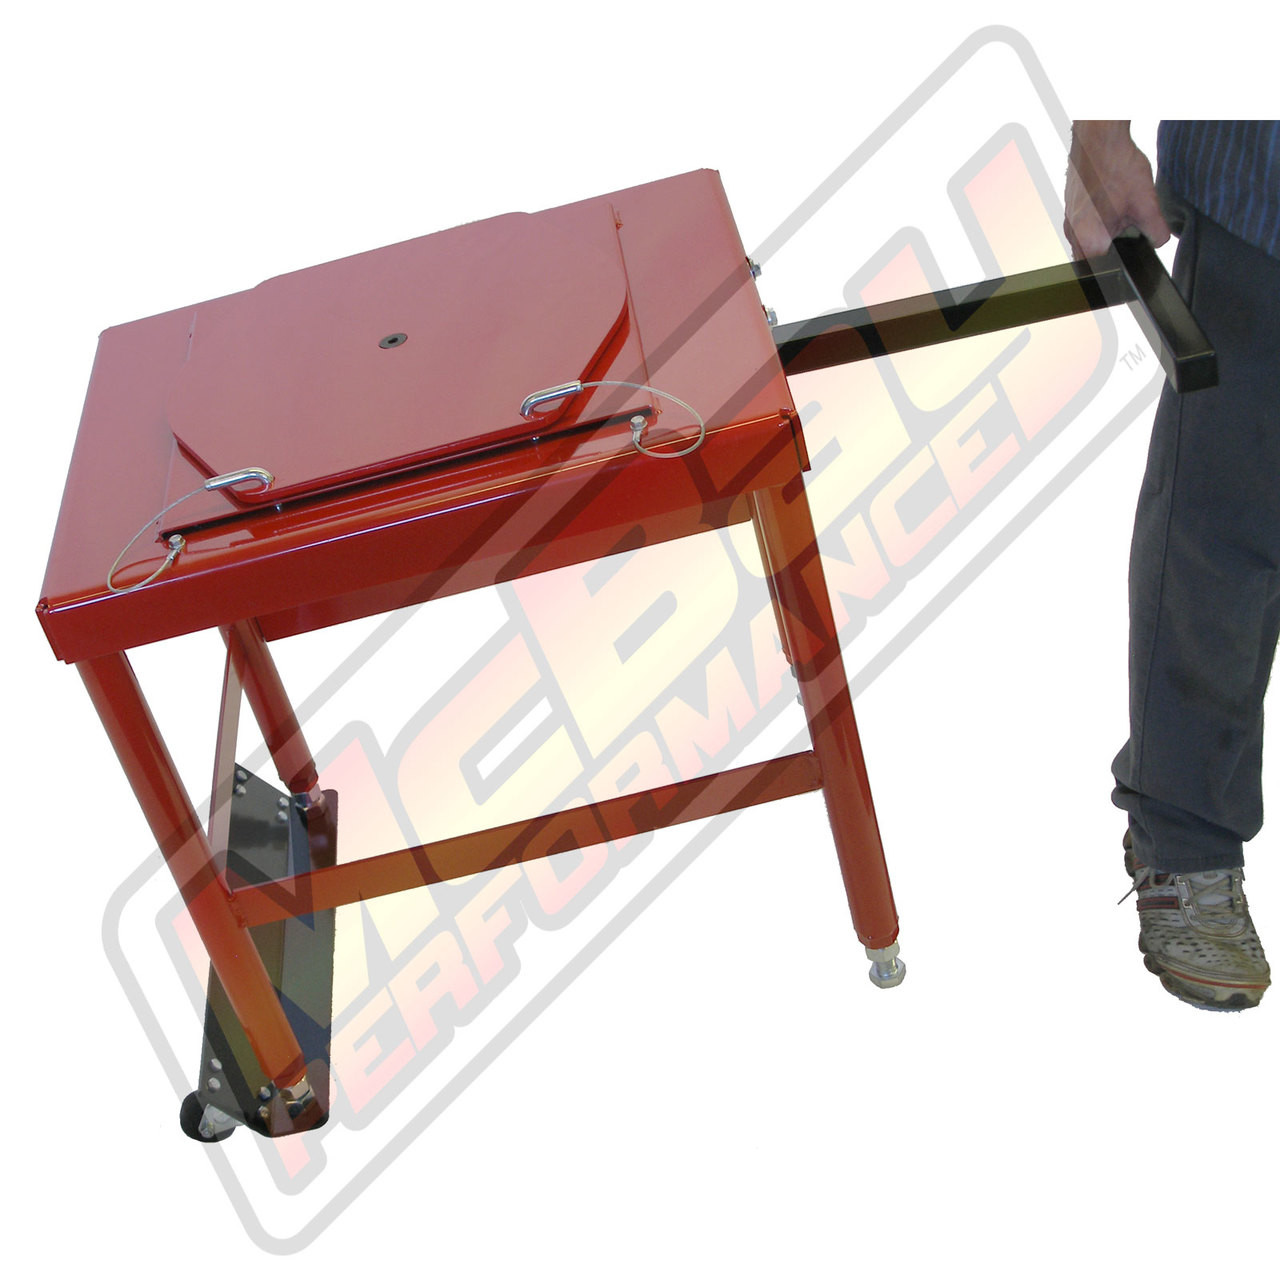 """20-24H - 24"""" Portable Standard Duty Alignment Stand Set Optional Wheel & Roller Kit In Action"""